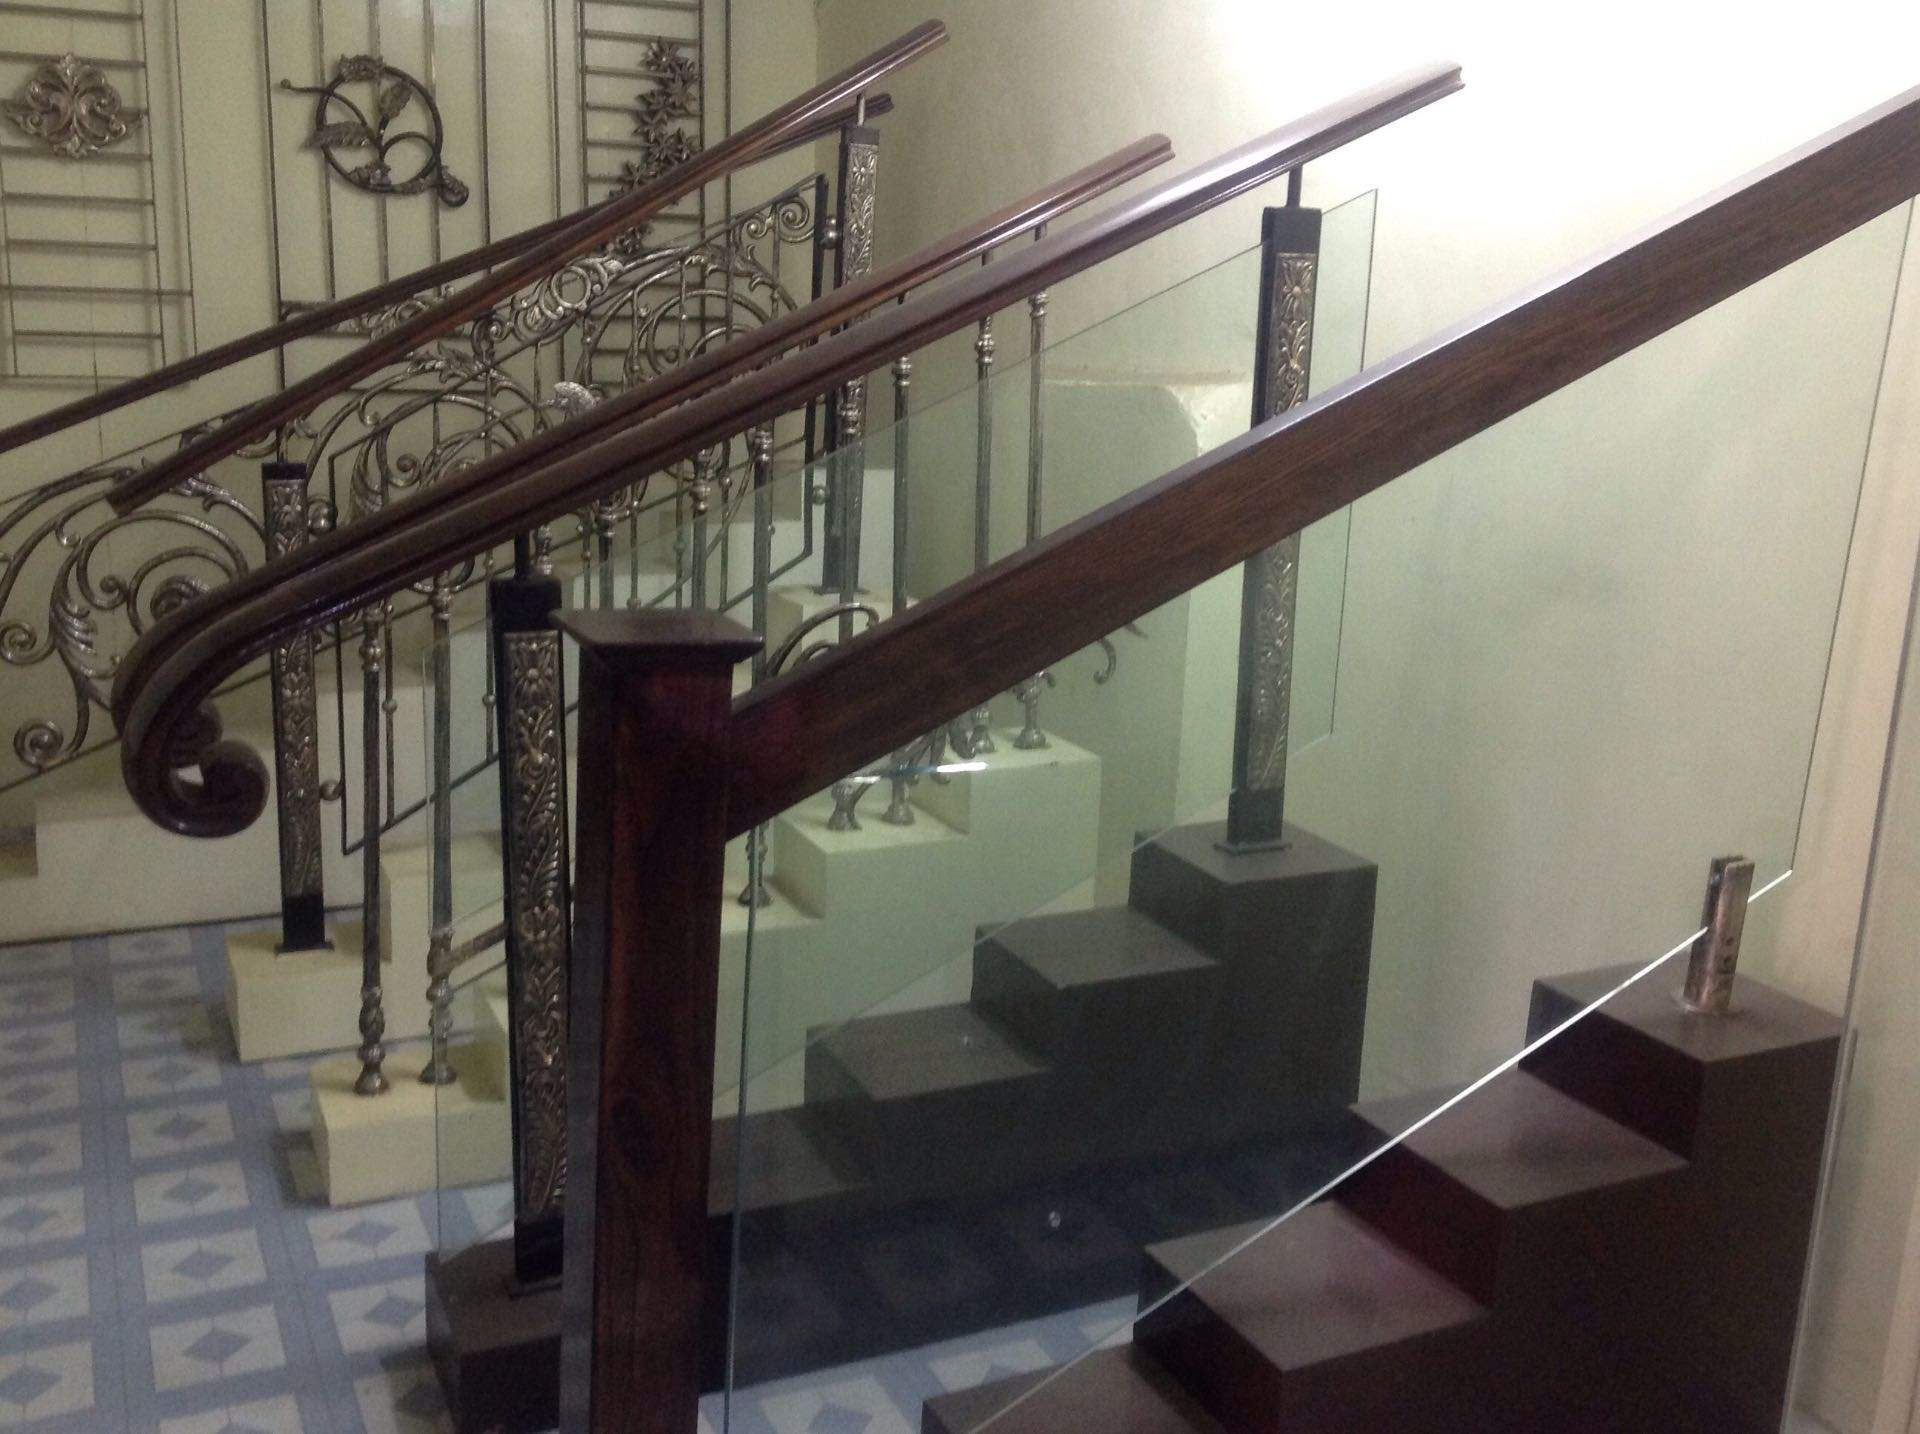 Top 20 Cast Iron Railing Manufacturers in Jaipur - Justdial